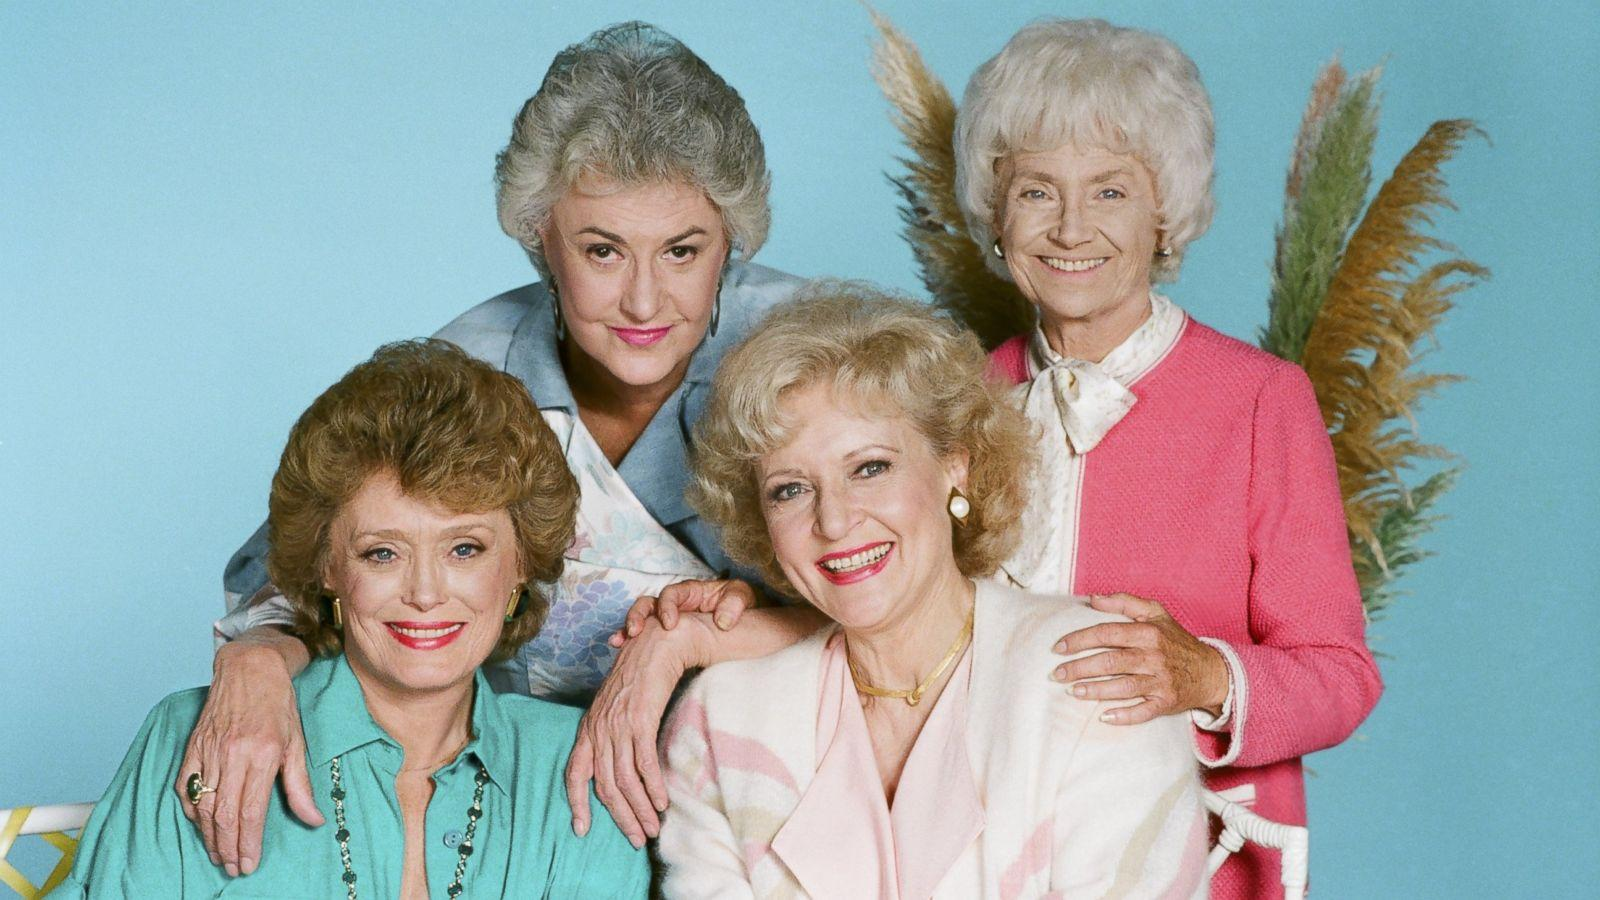 The Golden Girls' Turns 30: Facts You May Not Know About the Series